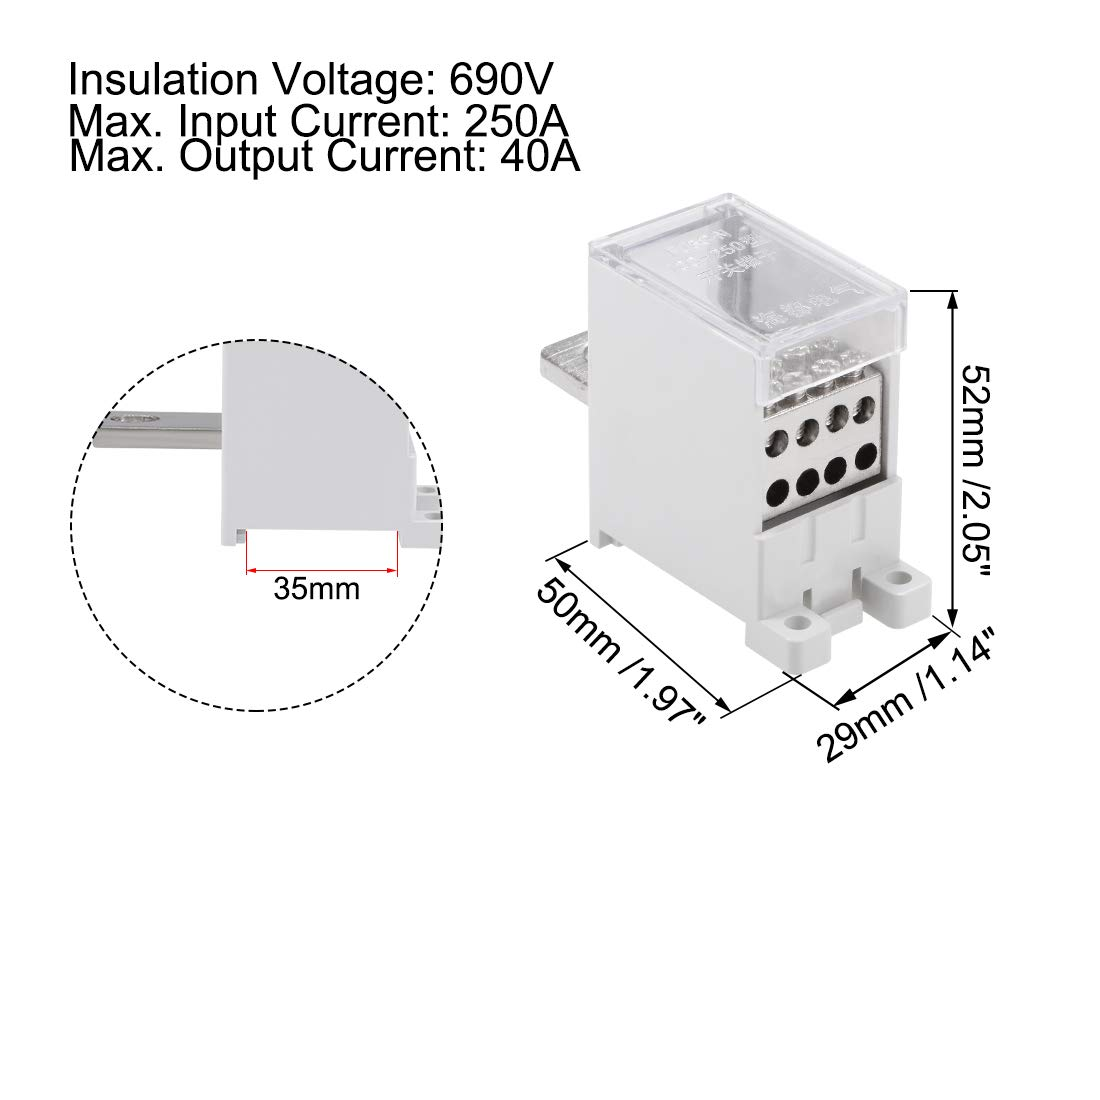 Power Distribution Terminal Block Connector DIN Rail 6-250 AWG 250A 690V